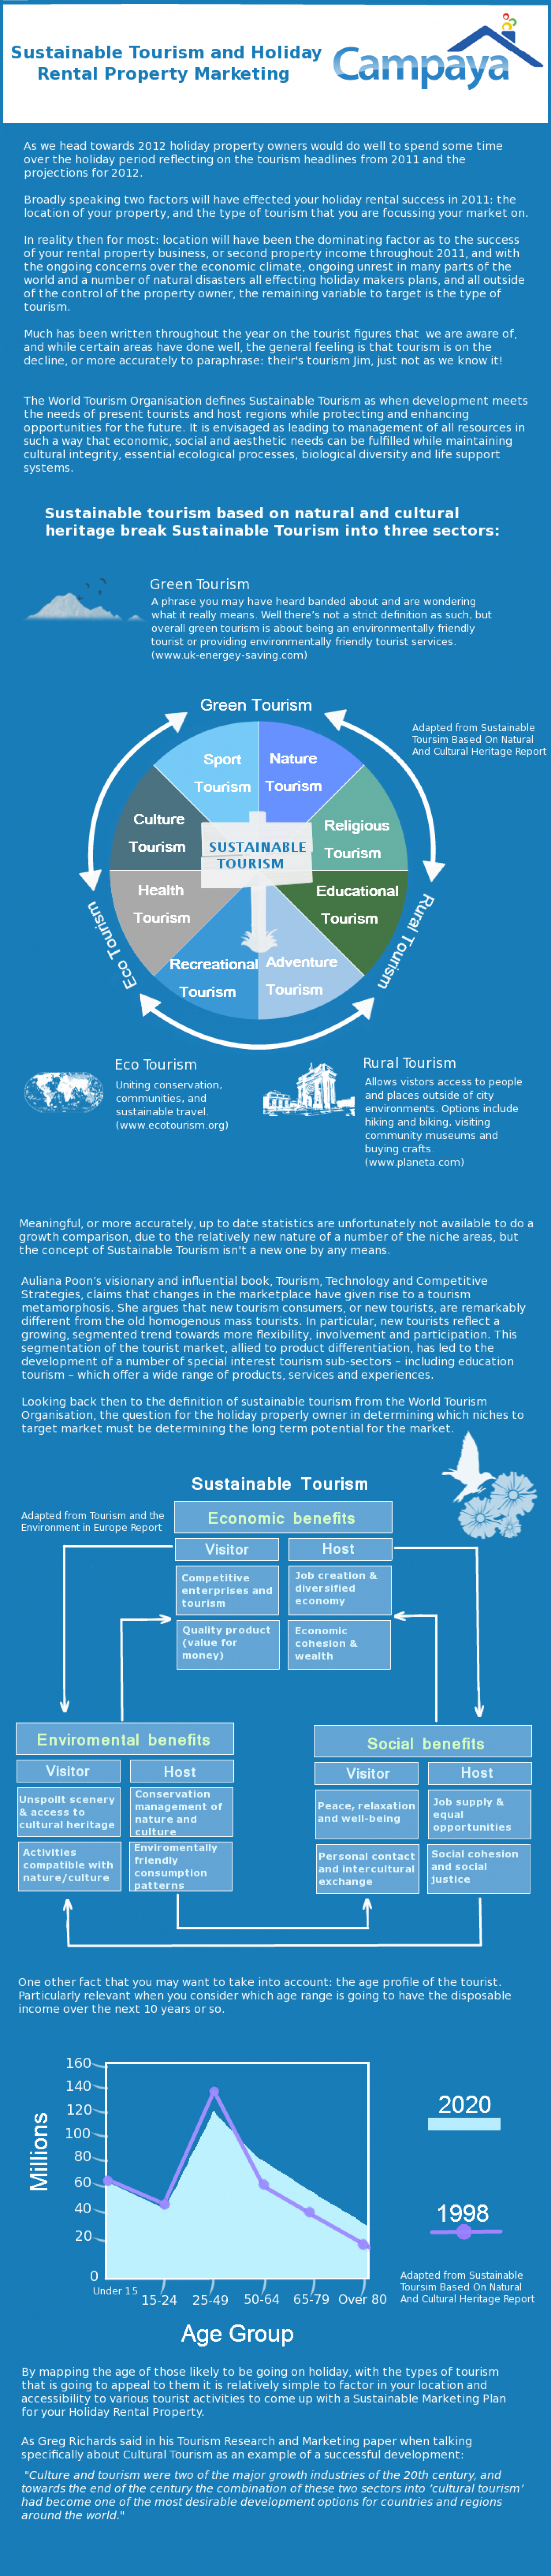 Sustainable Tourism and Holiday Rental Property Marketing Infographic